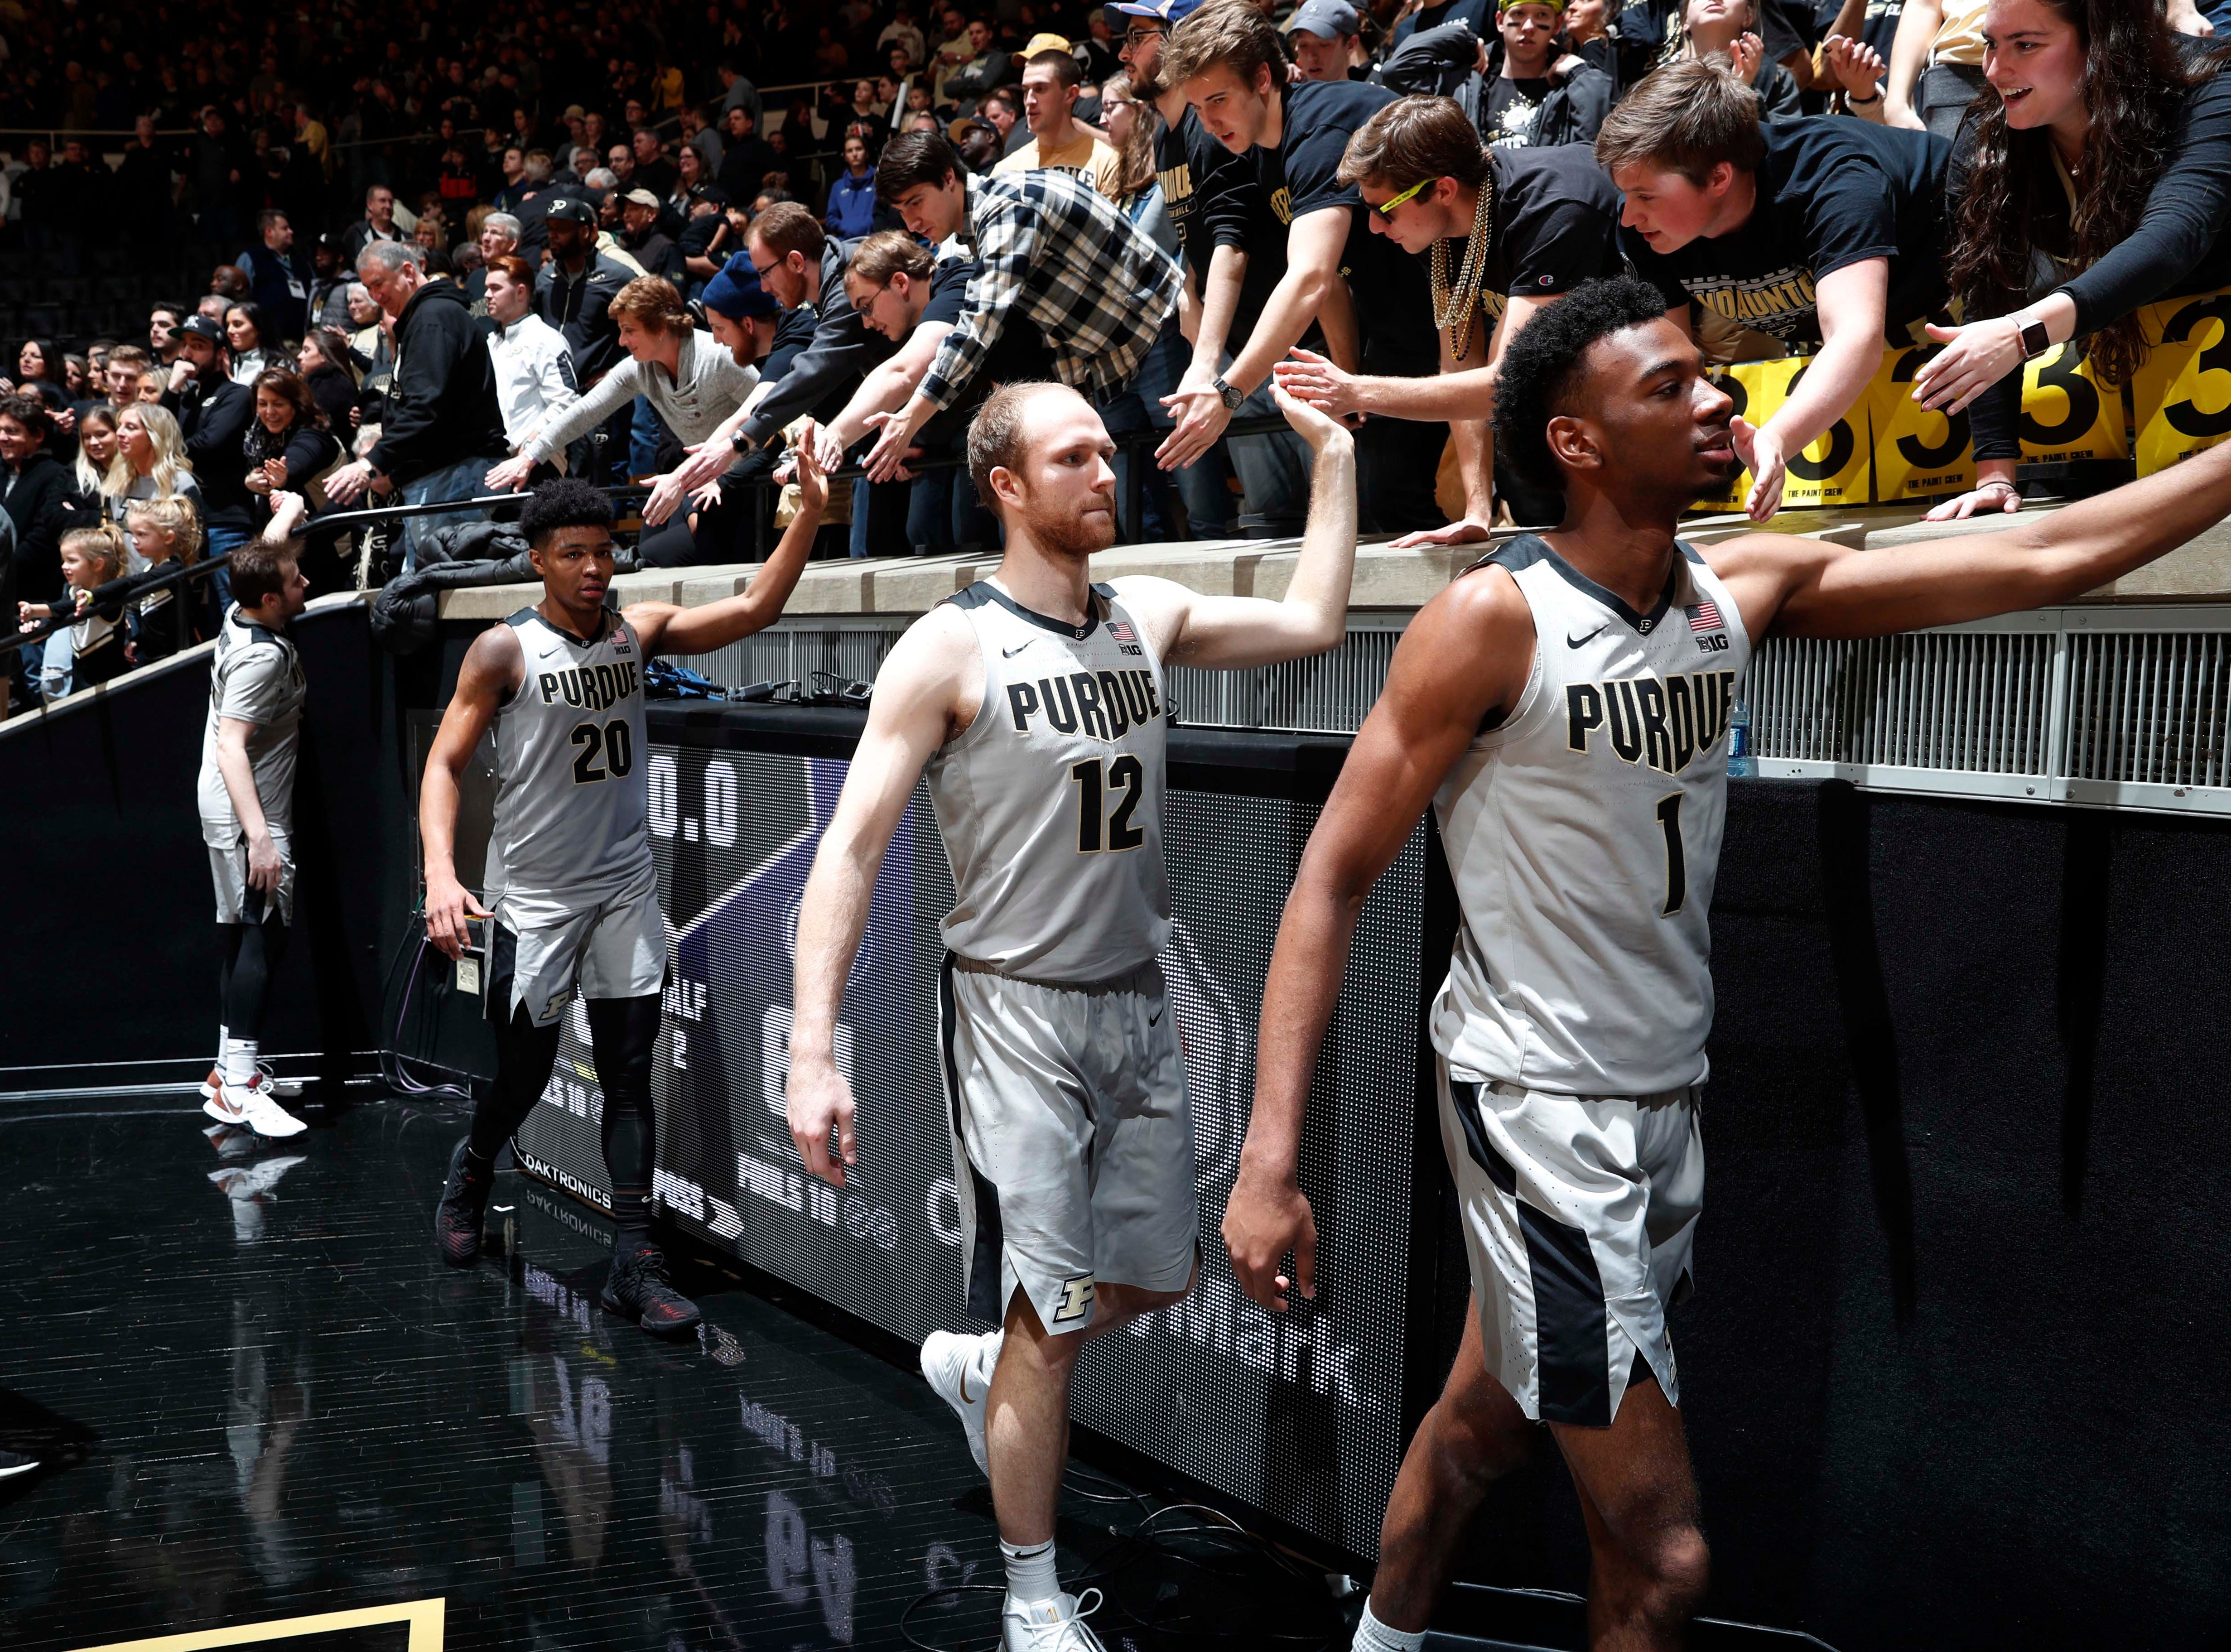 Feb 16, 2019; West Lafayette, IN, USA; Purdue Boilermakers high five the fans after the victory against the Penn State Nittany Lions at Mackey Arena. Mandatory Credit: Brian Spurlock-USA TODAY Sports